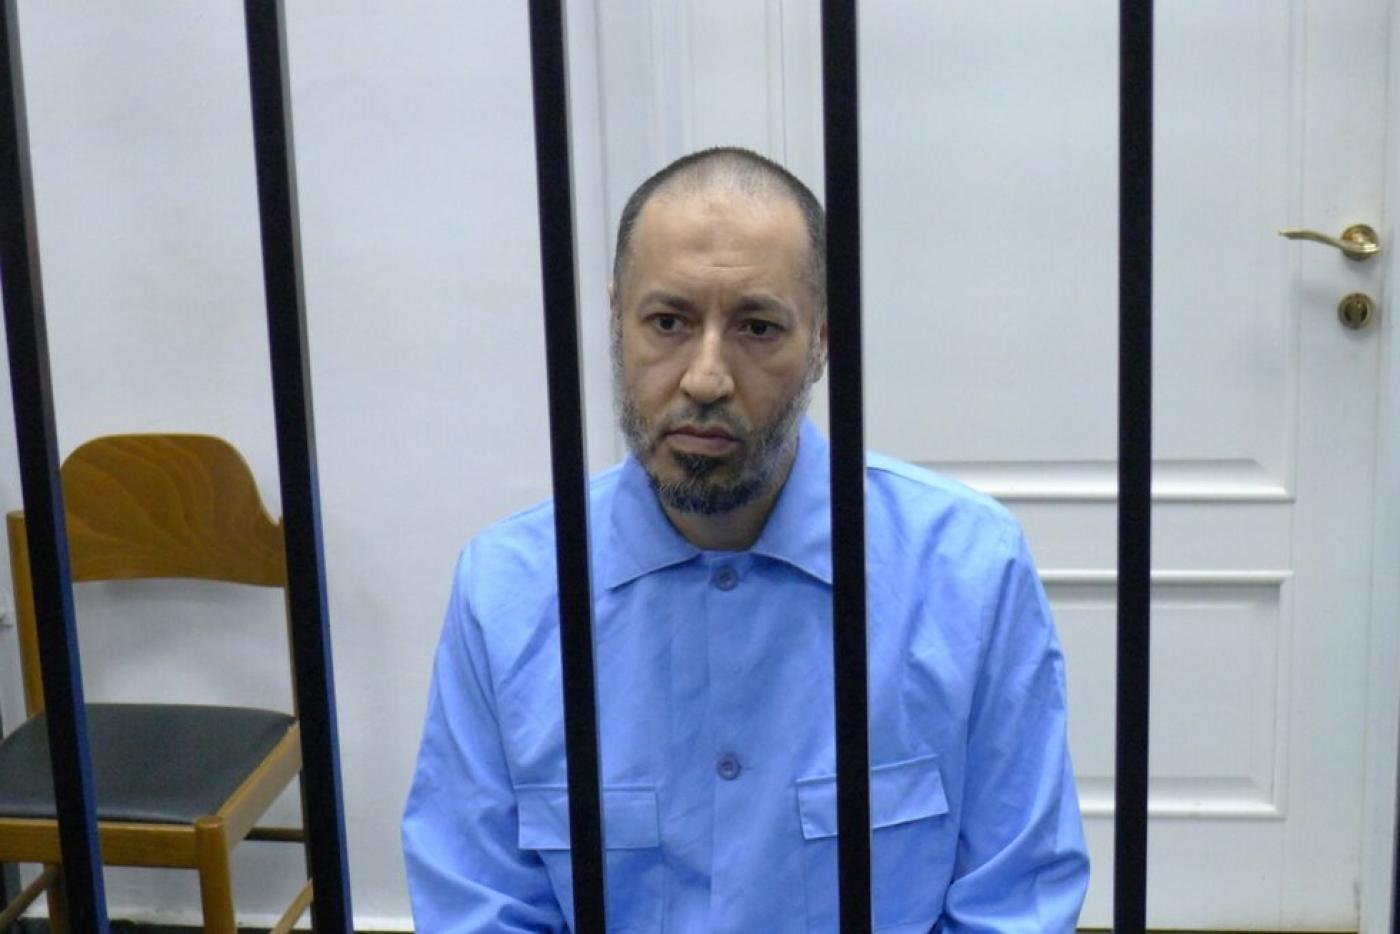 Saadi Gaddafi in court charged with murdering footballer | Middle East Eye